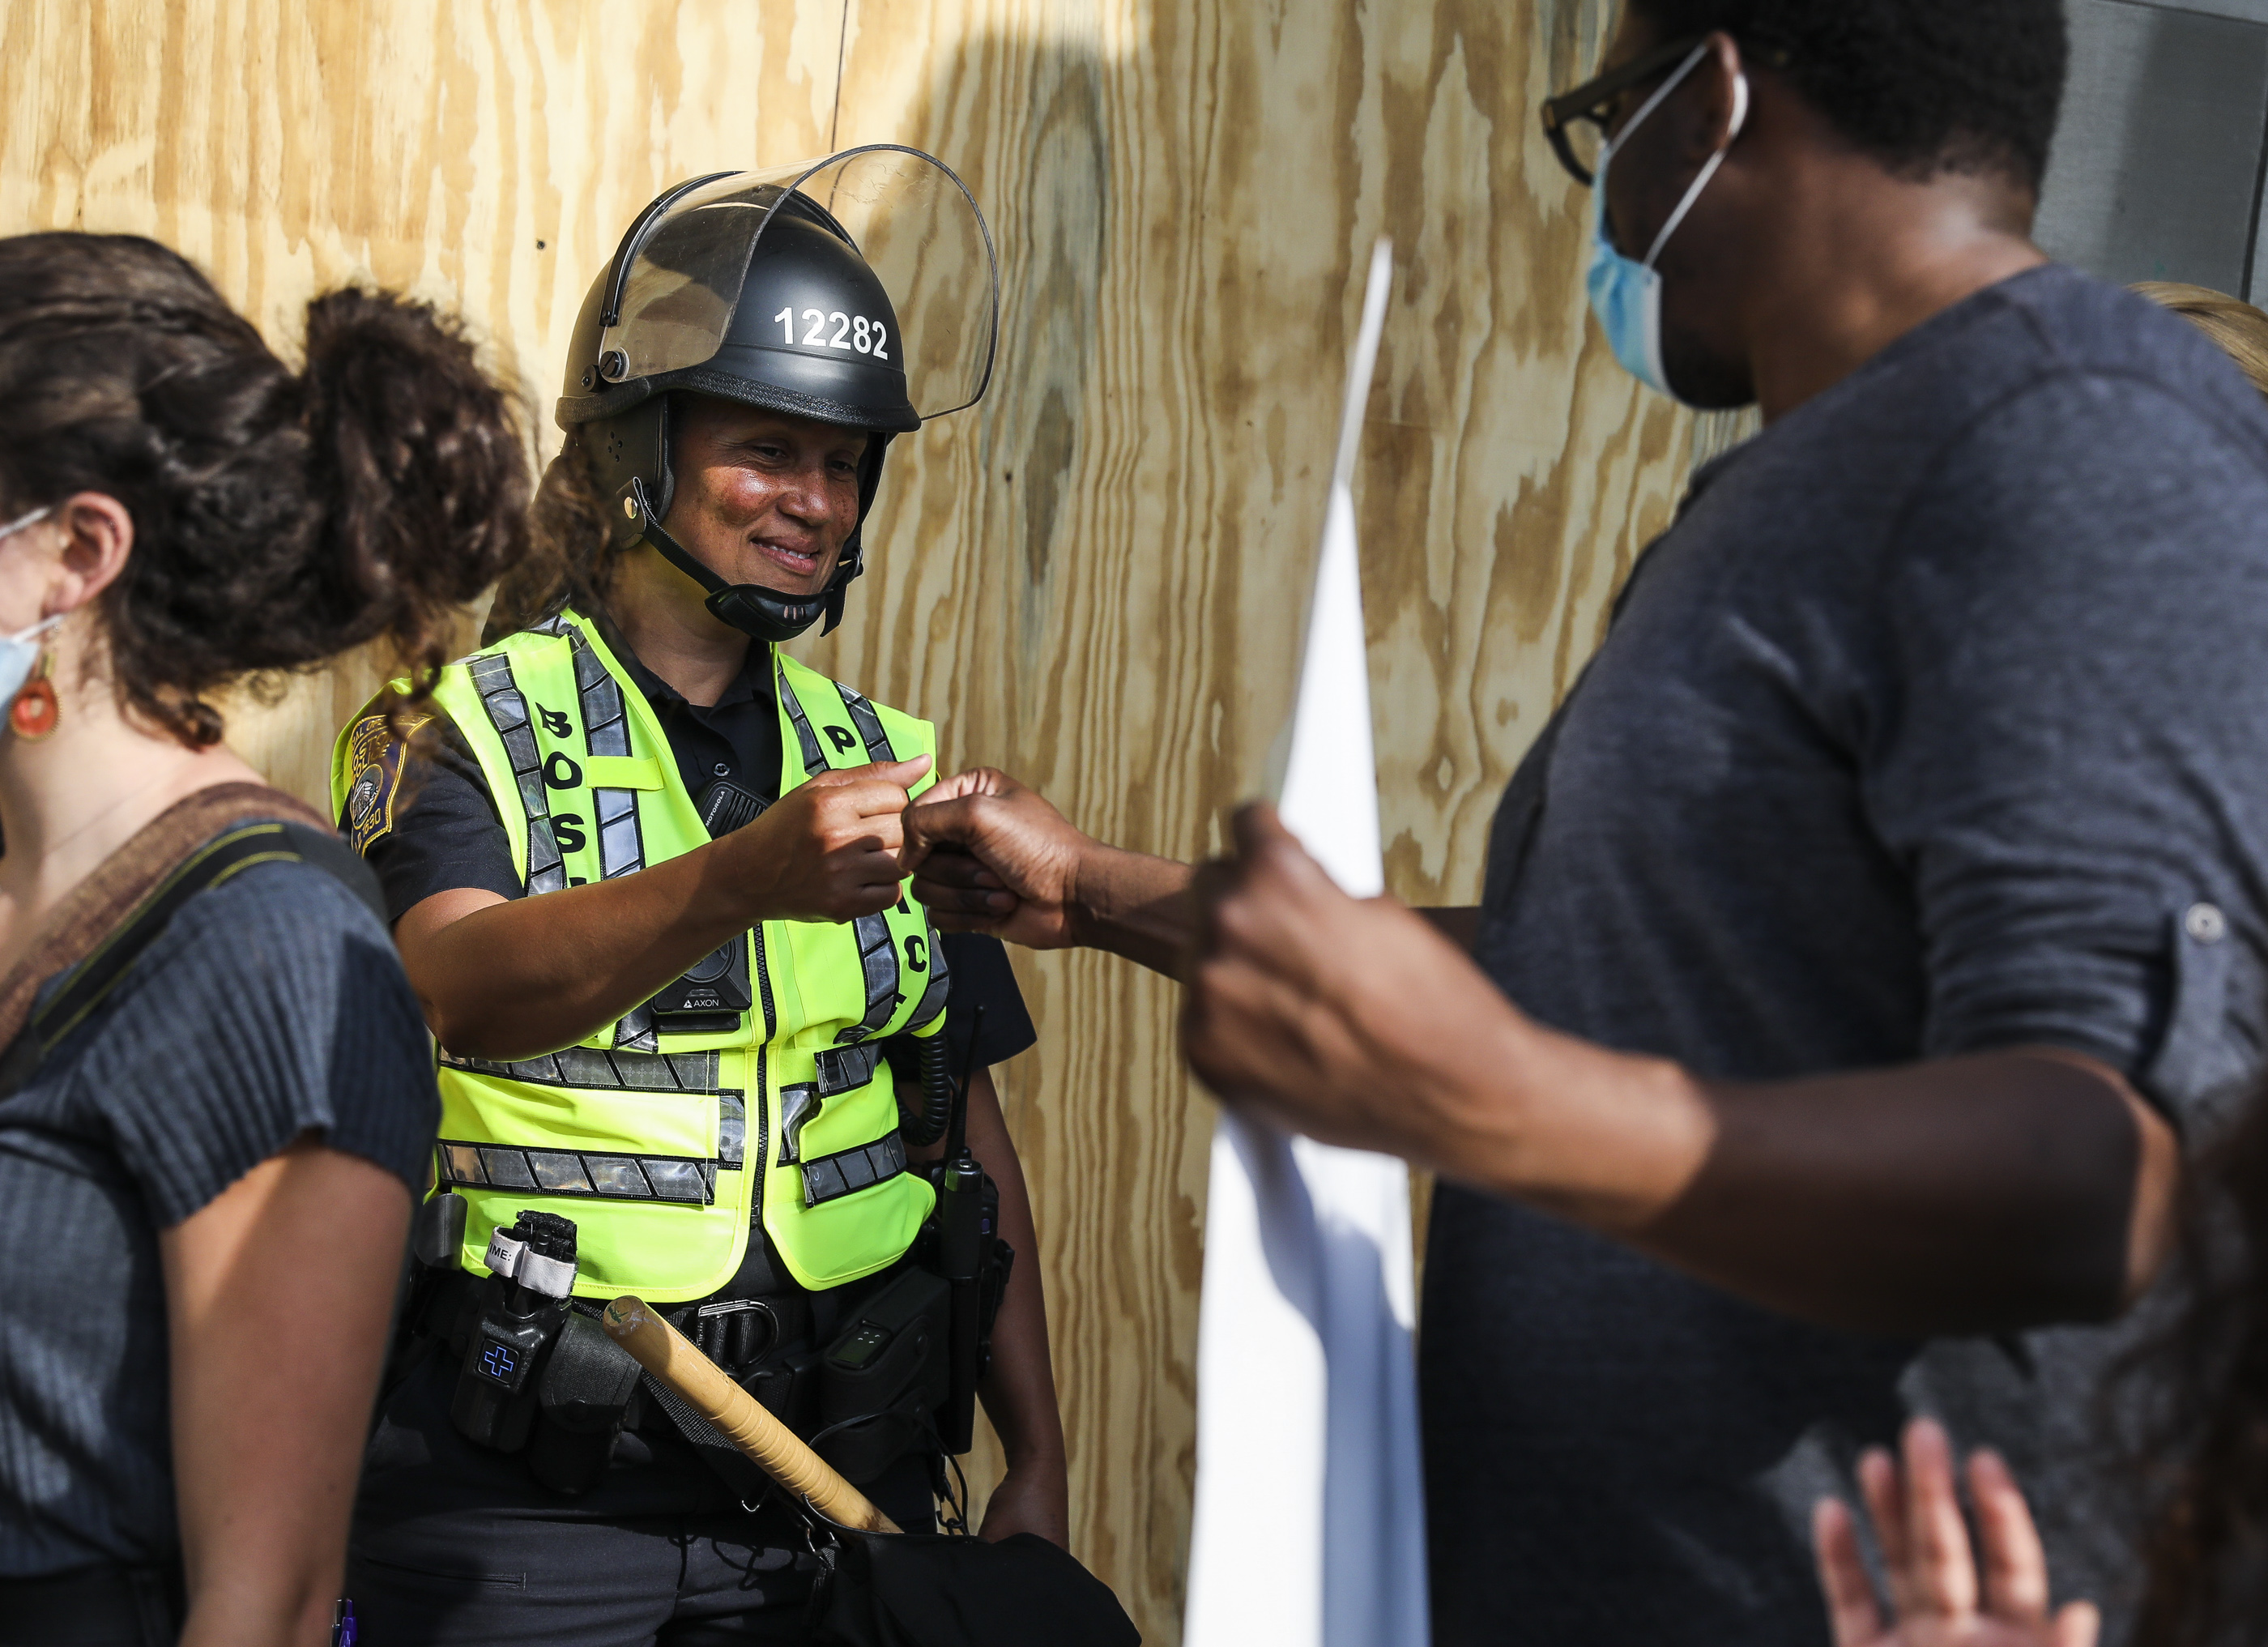 Police Unions Must Police Their Members The Boston Globe